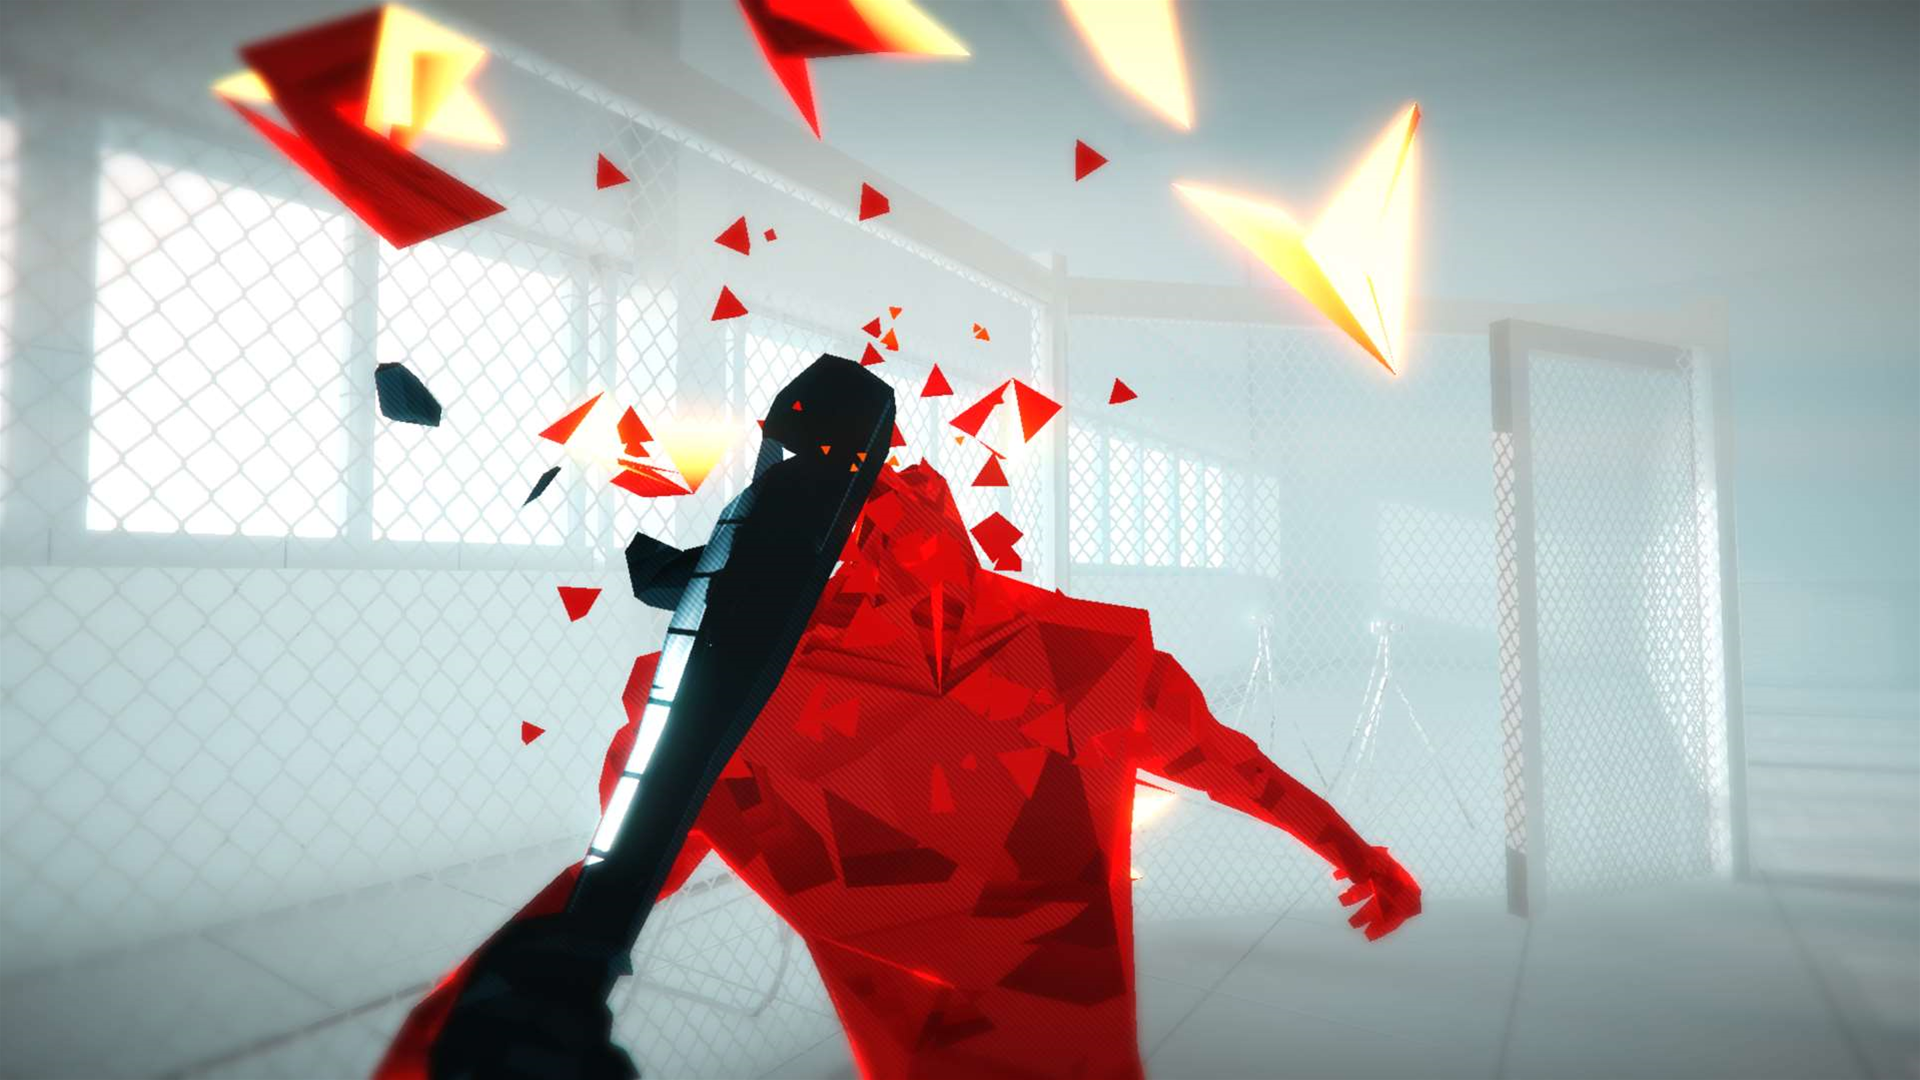 Superhot gets a mess of new screens